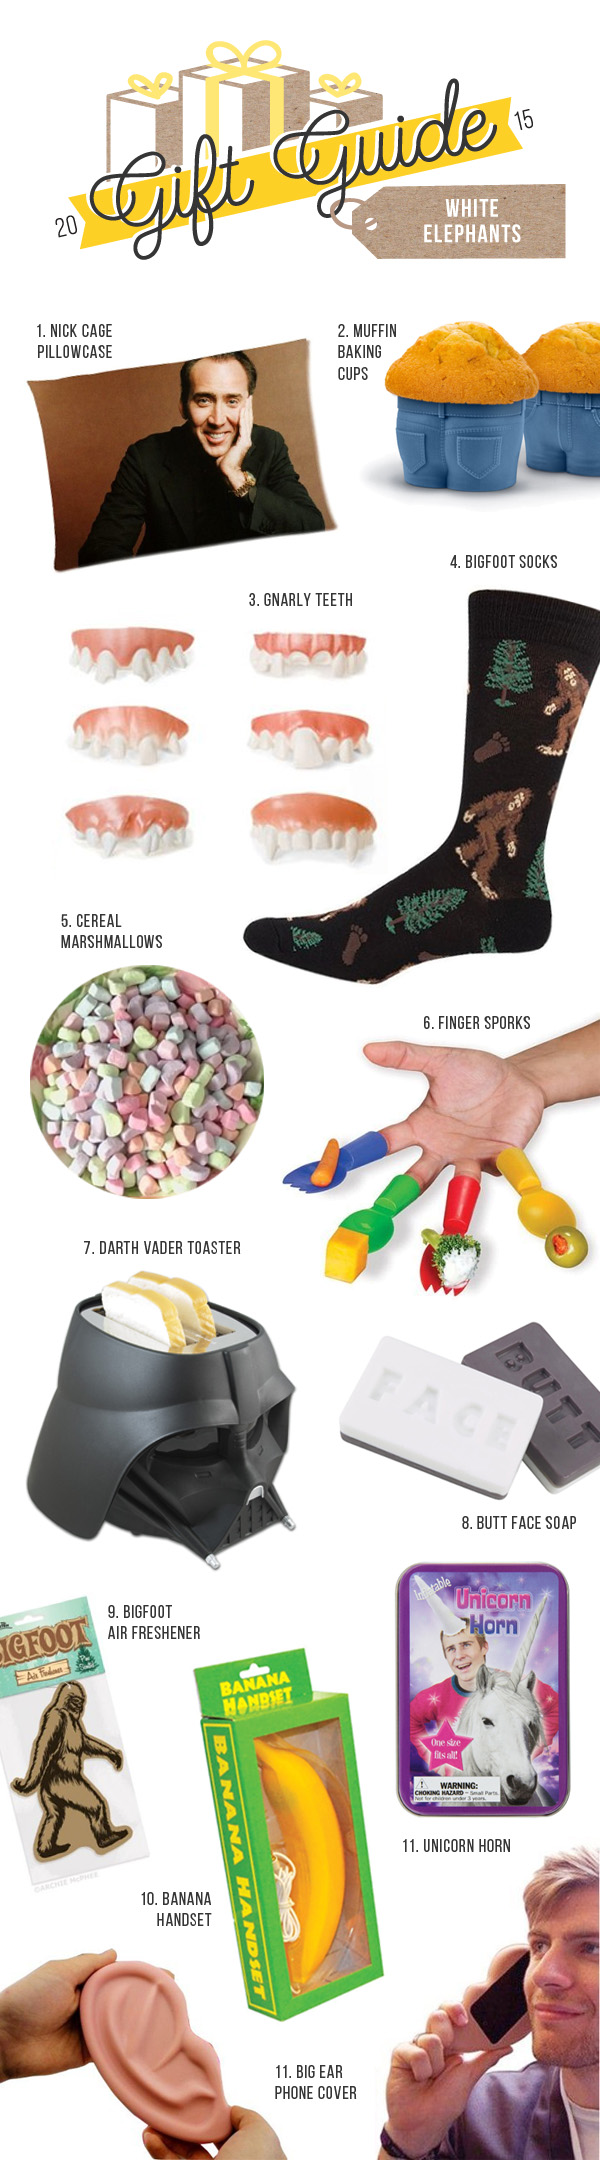 Funny White Elephant Gifts To Shock And Delight How Does She